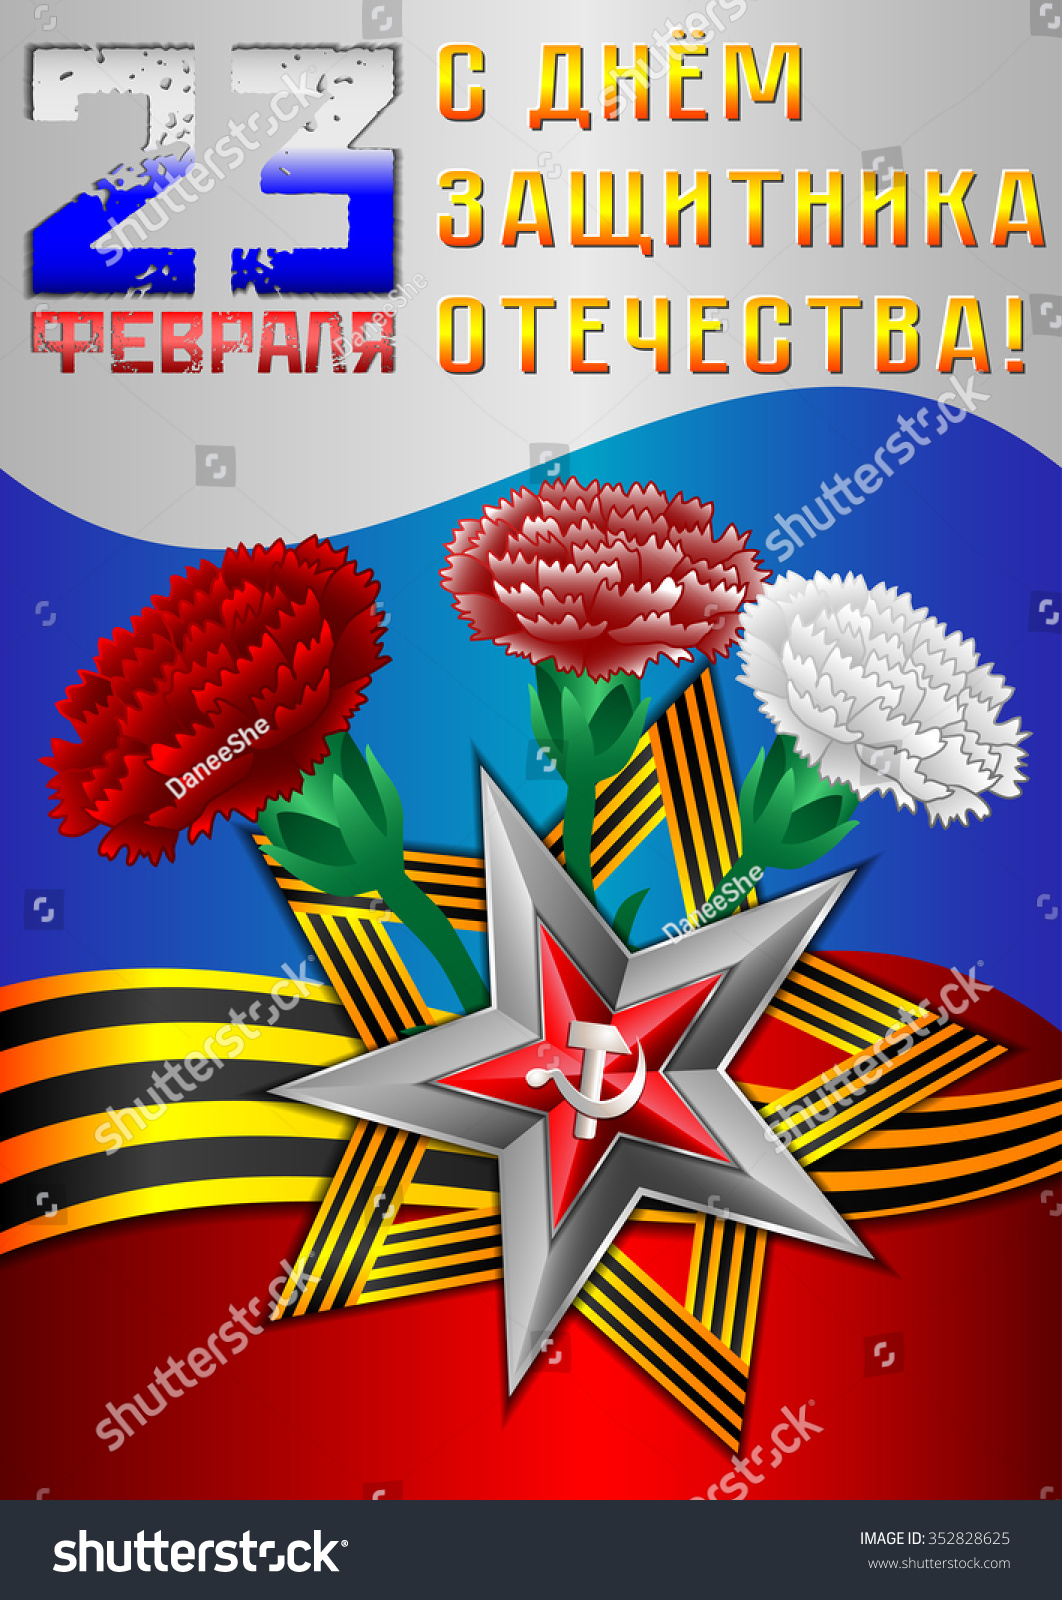 Holiday card with Georgievsky star and ribbon with carnations on Russian flag for February 23 or May 9 Russian translation 23 February Happy Defender of the Fatherland day Vector illustration